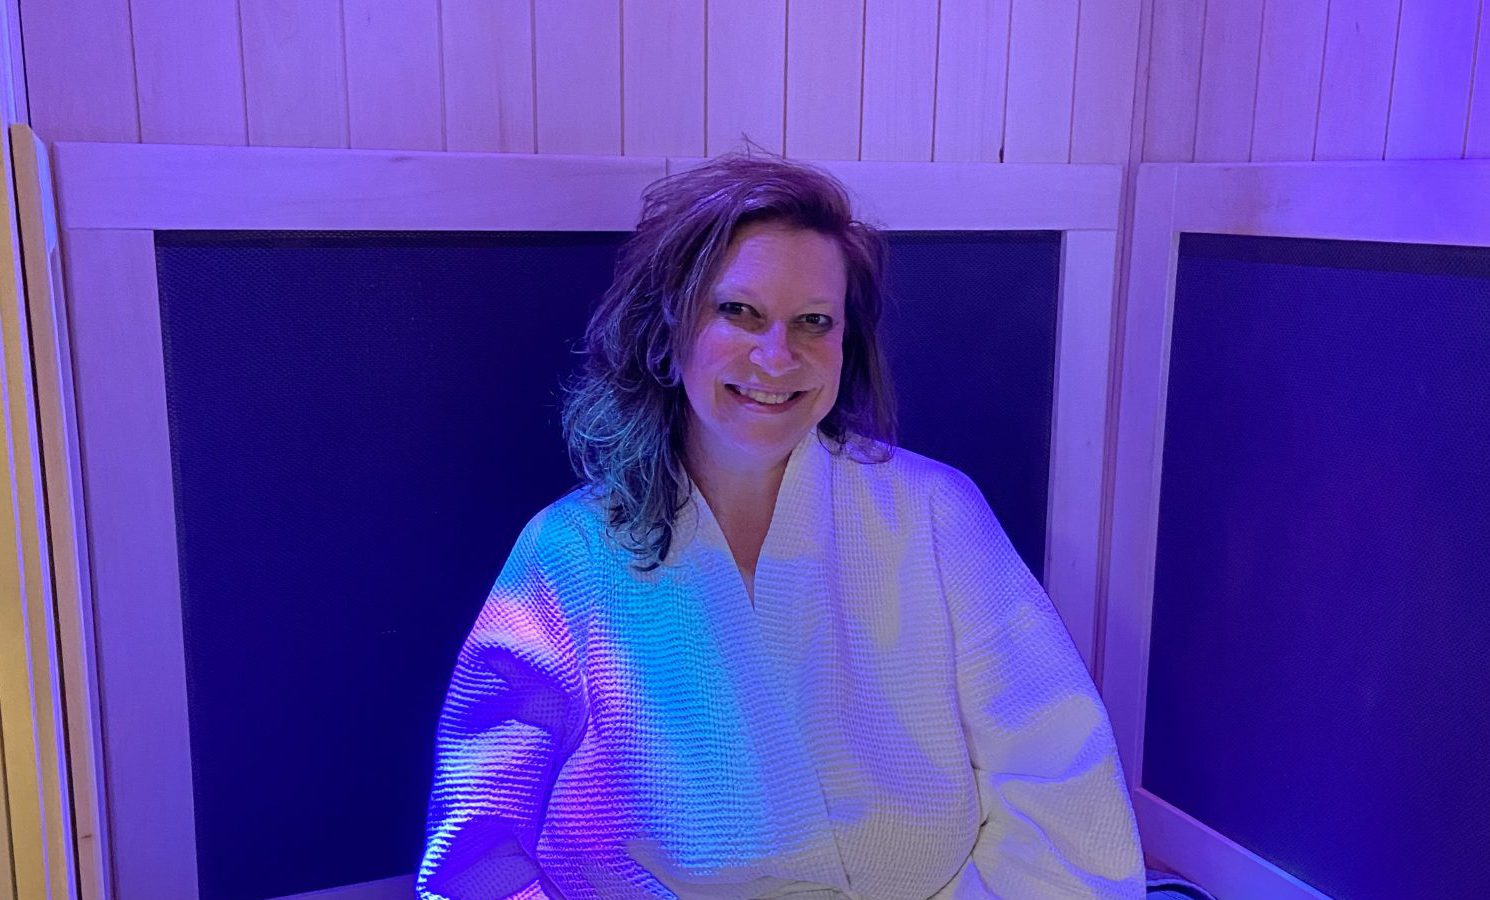 Customer enjoying the infrared sauna at CryoStretch in Knoxville TN